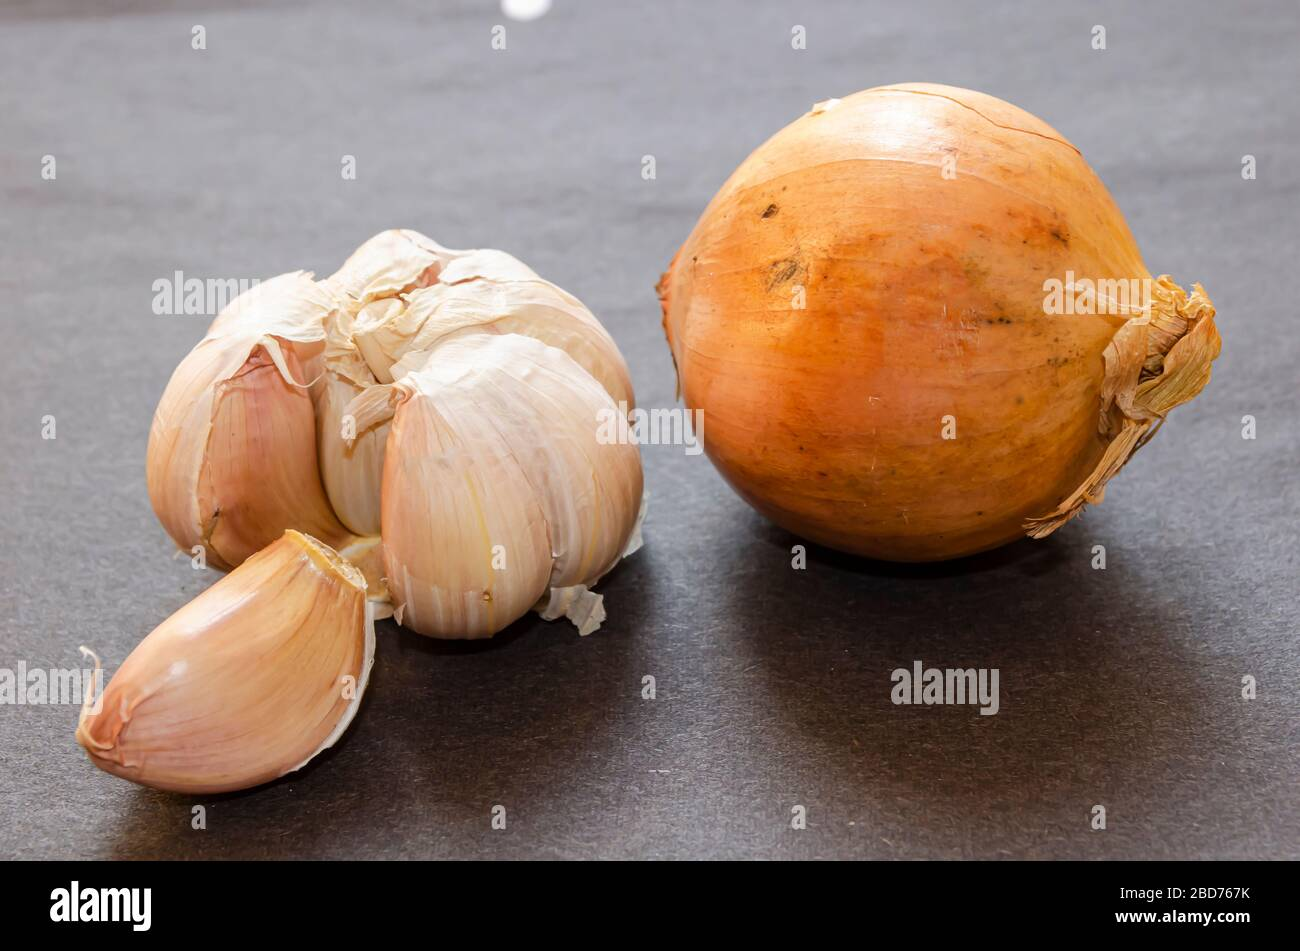 White Garlic And Onion Stock Photo